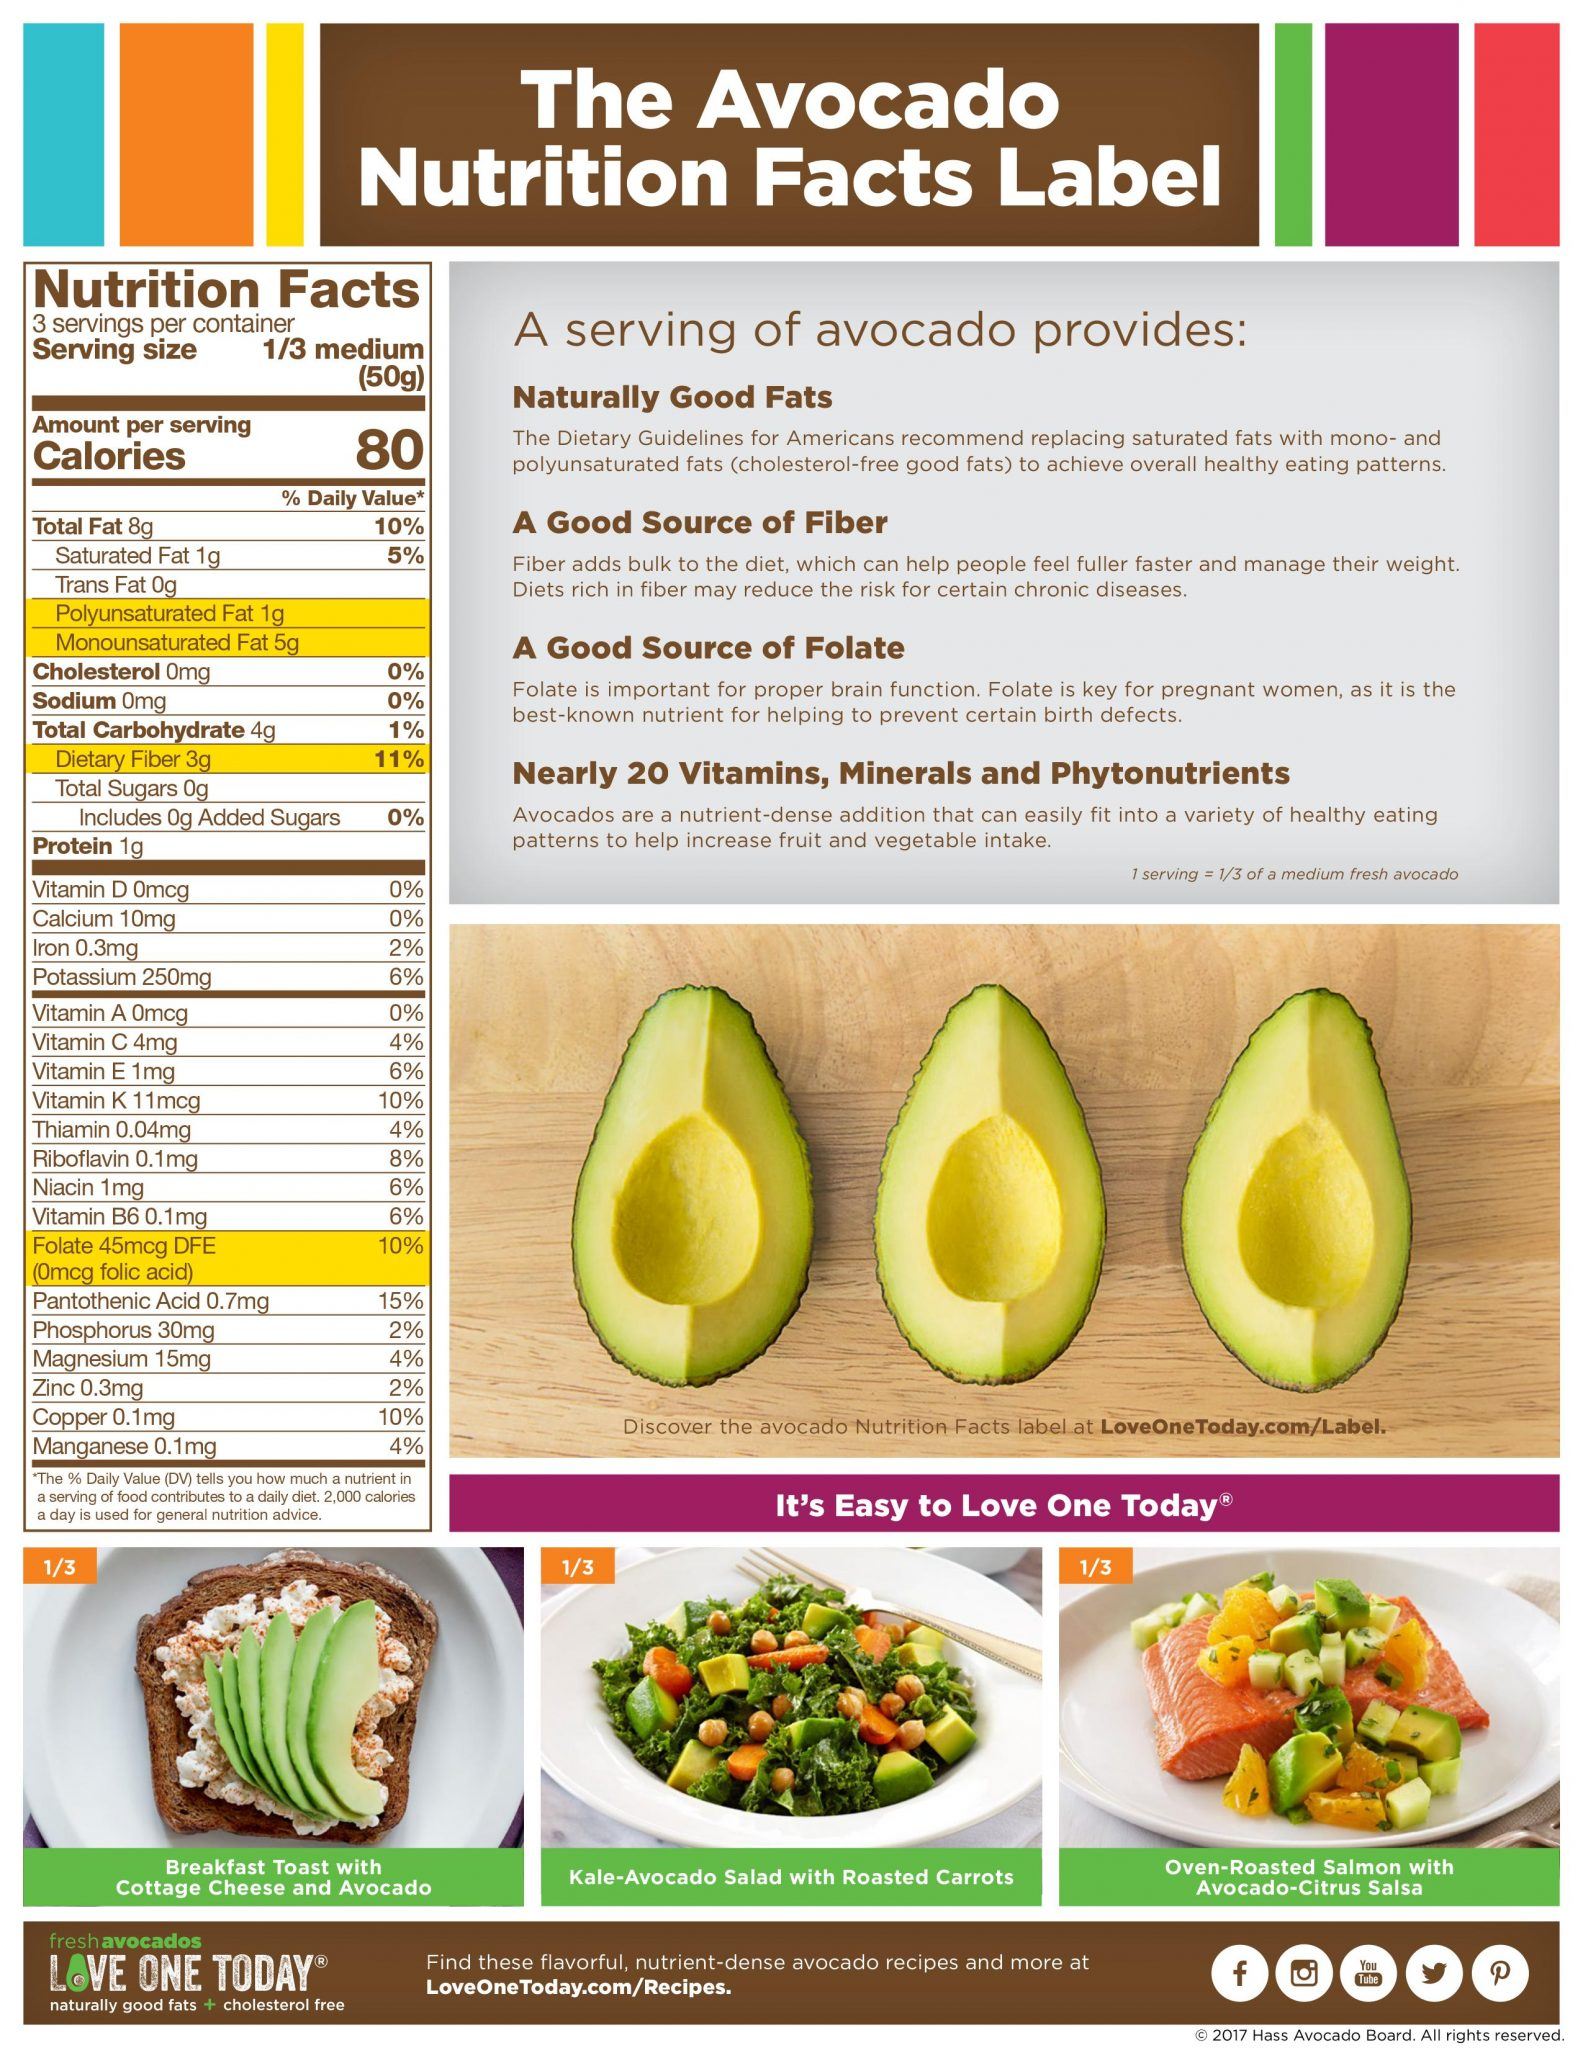 Avocado nutrition fact label